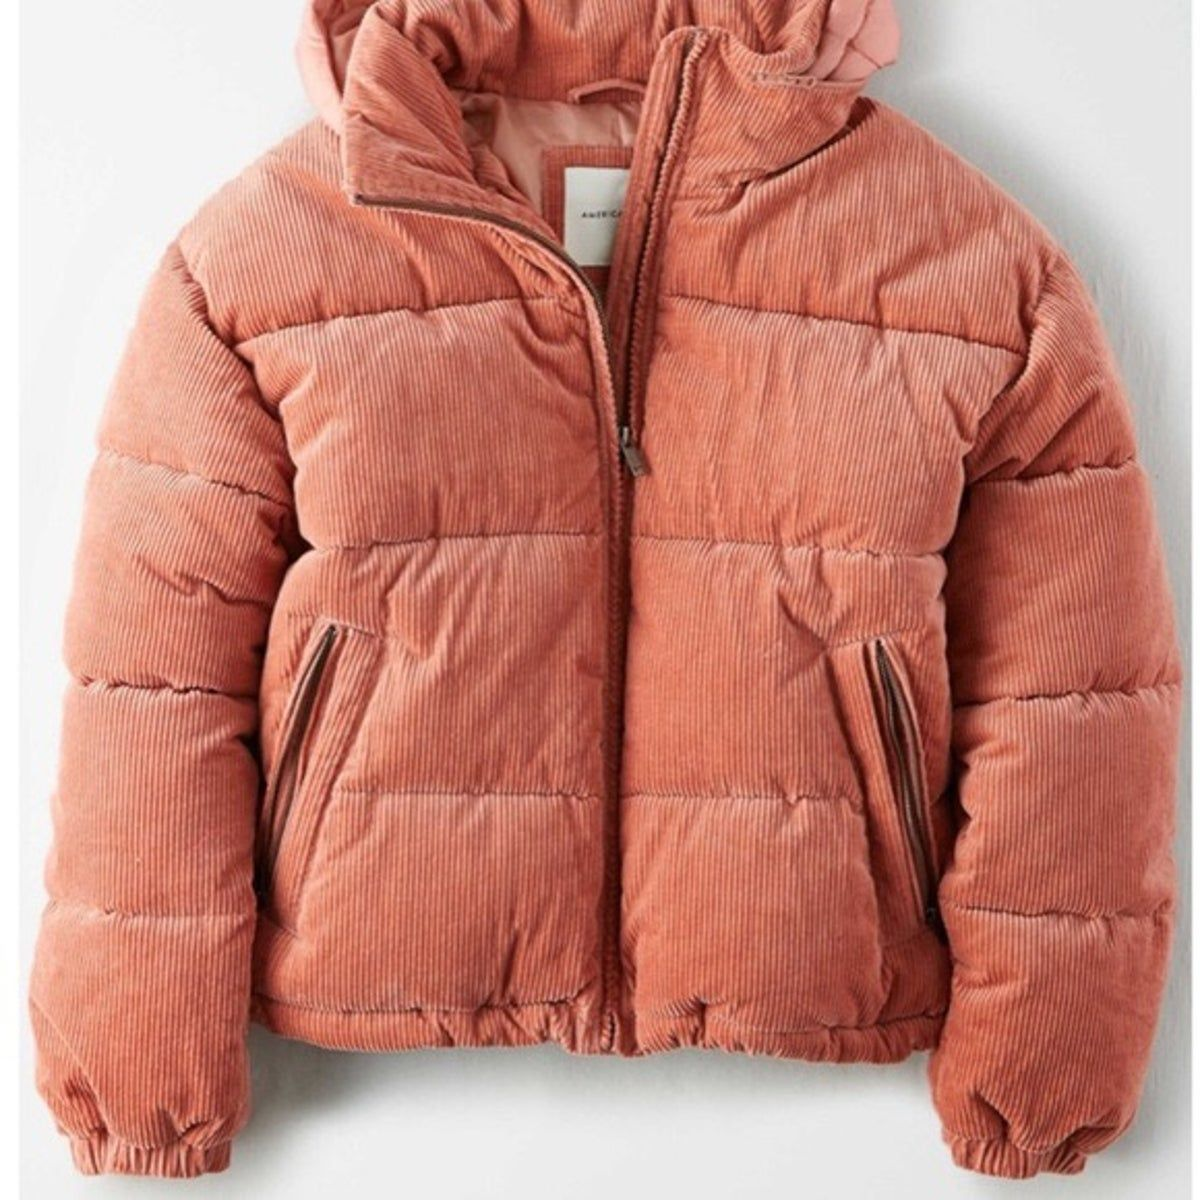 American Eagle Pink Puffer Jacket Nw On Mercari In 2021 Winter Jackets Women Puffer Jacket Women Corduroy Puffer Jacket [ 1200 x 1200 Pixel ]